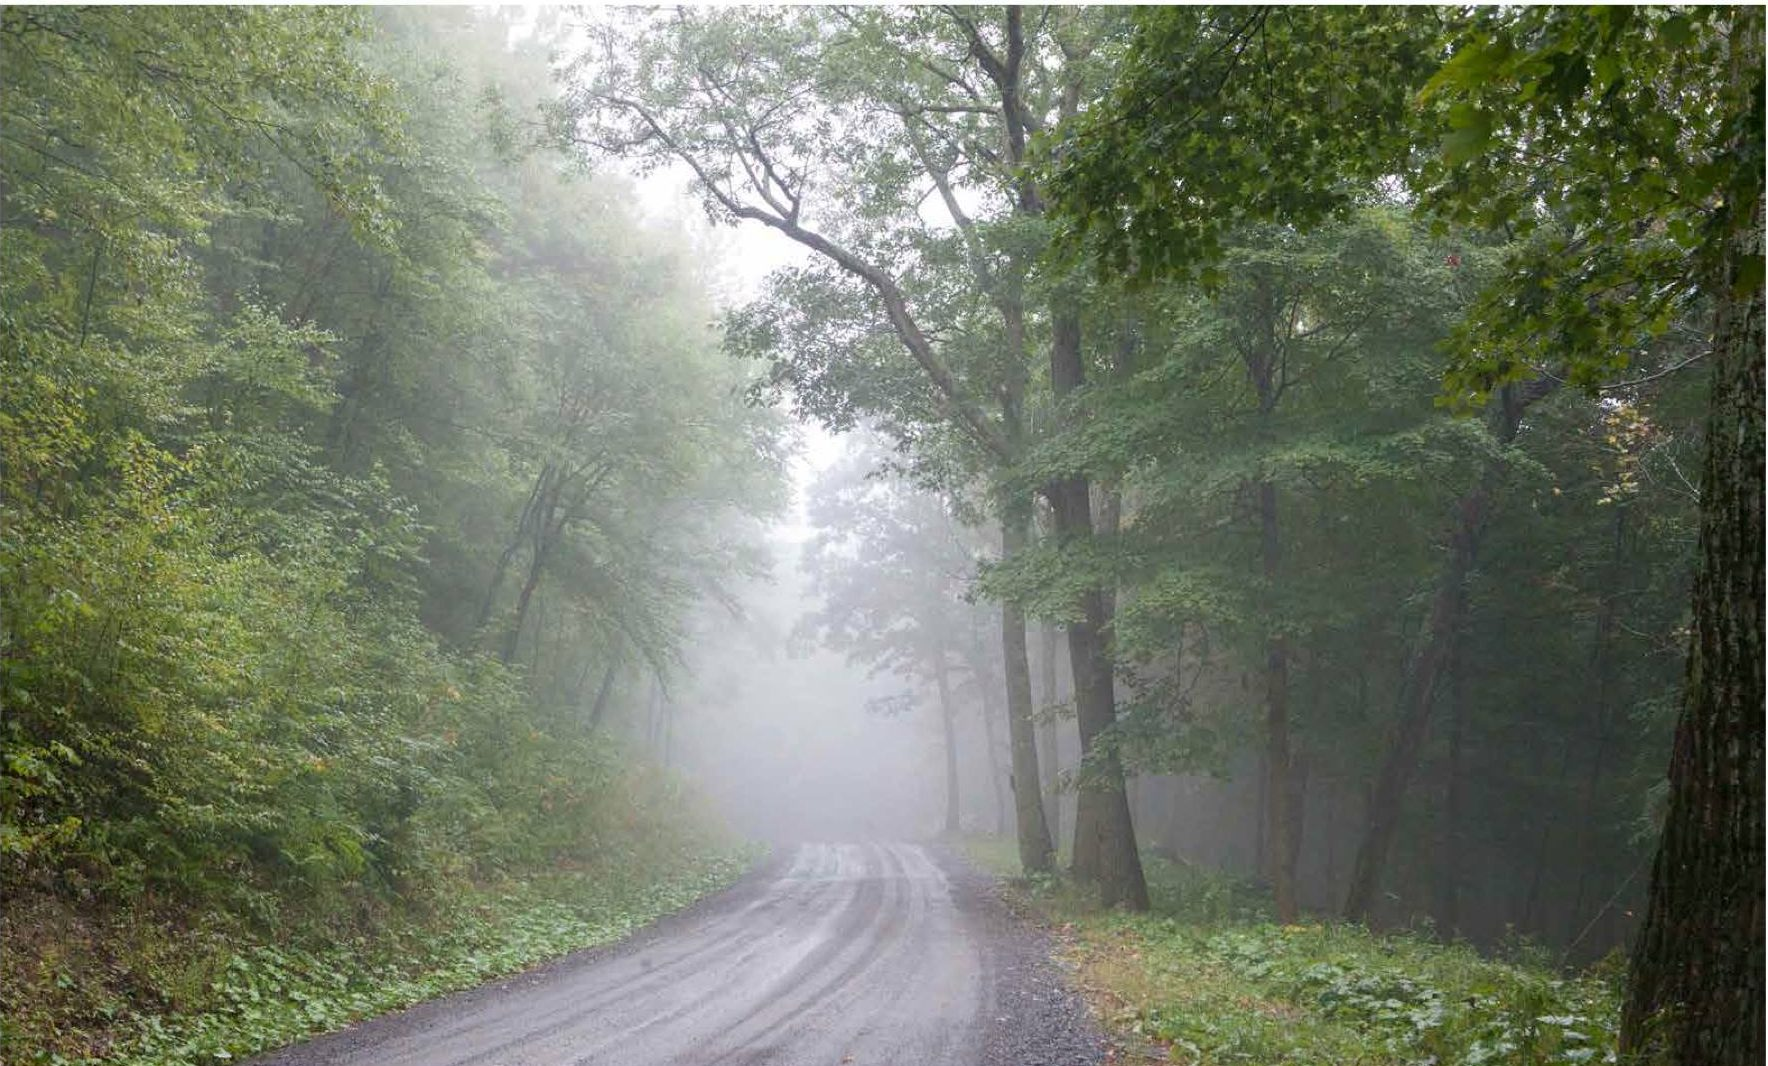 Foggy Road in Upstate New York